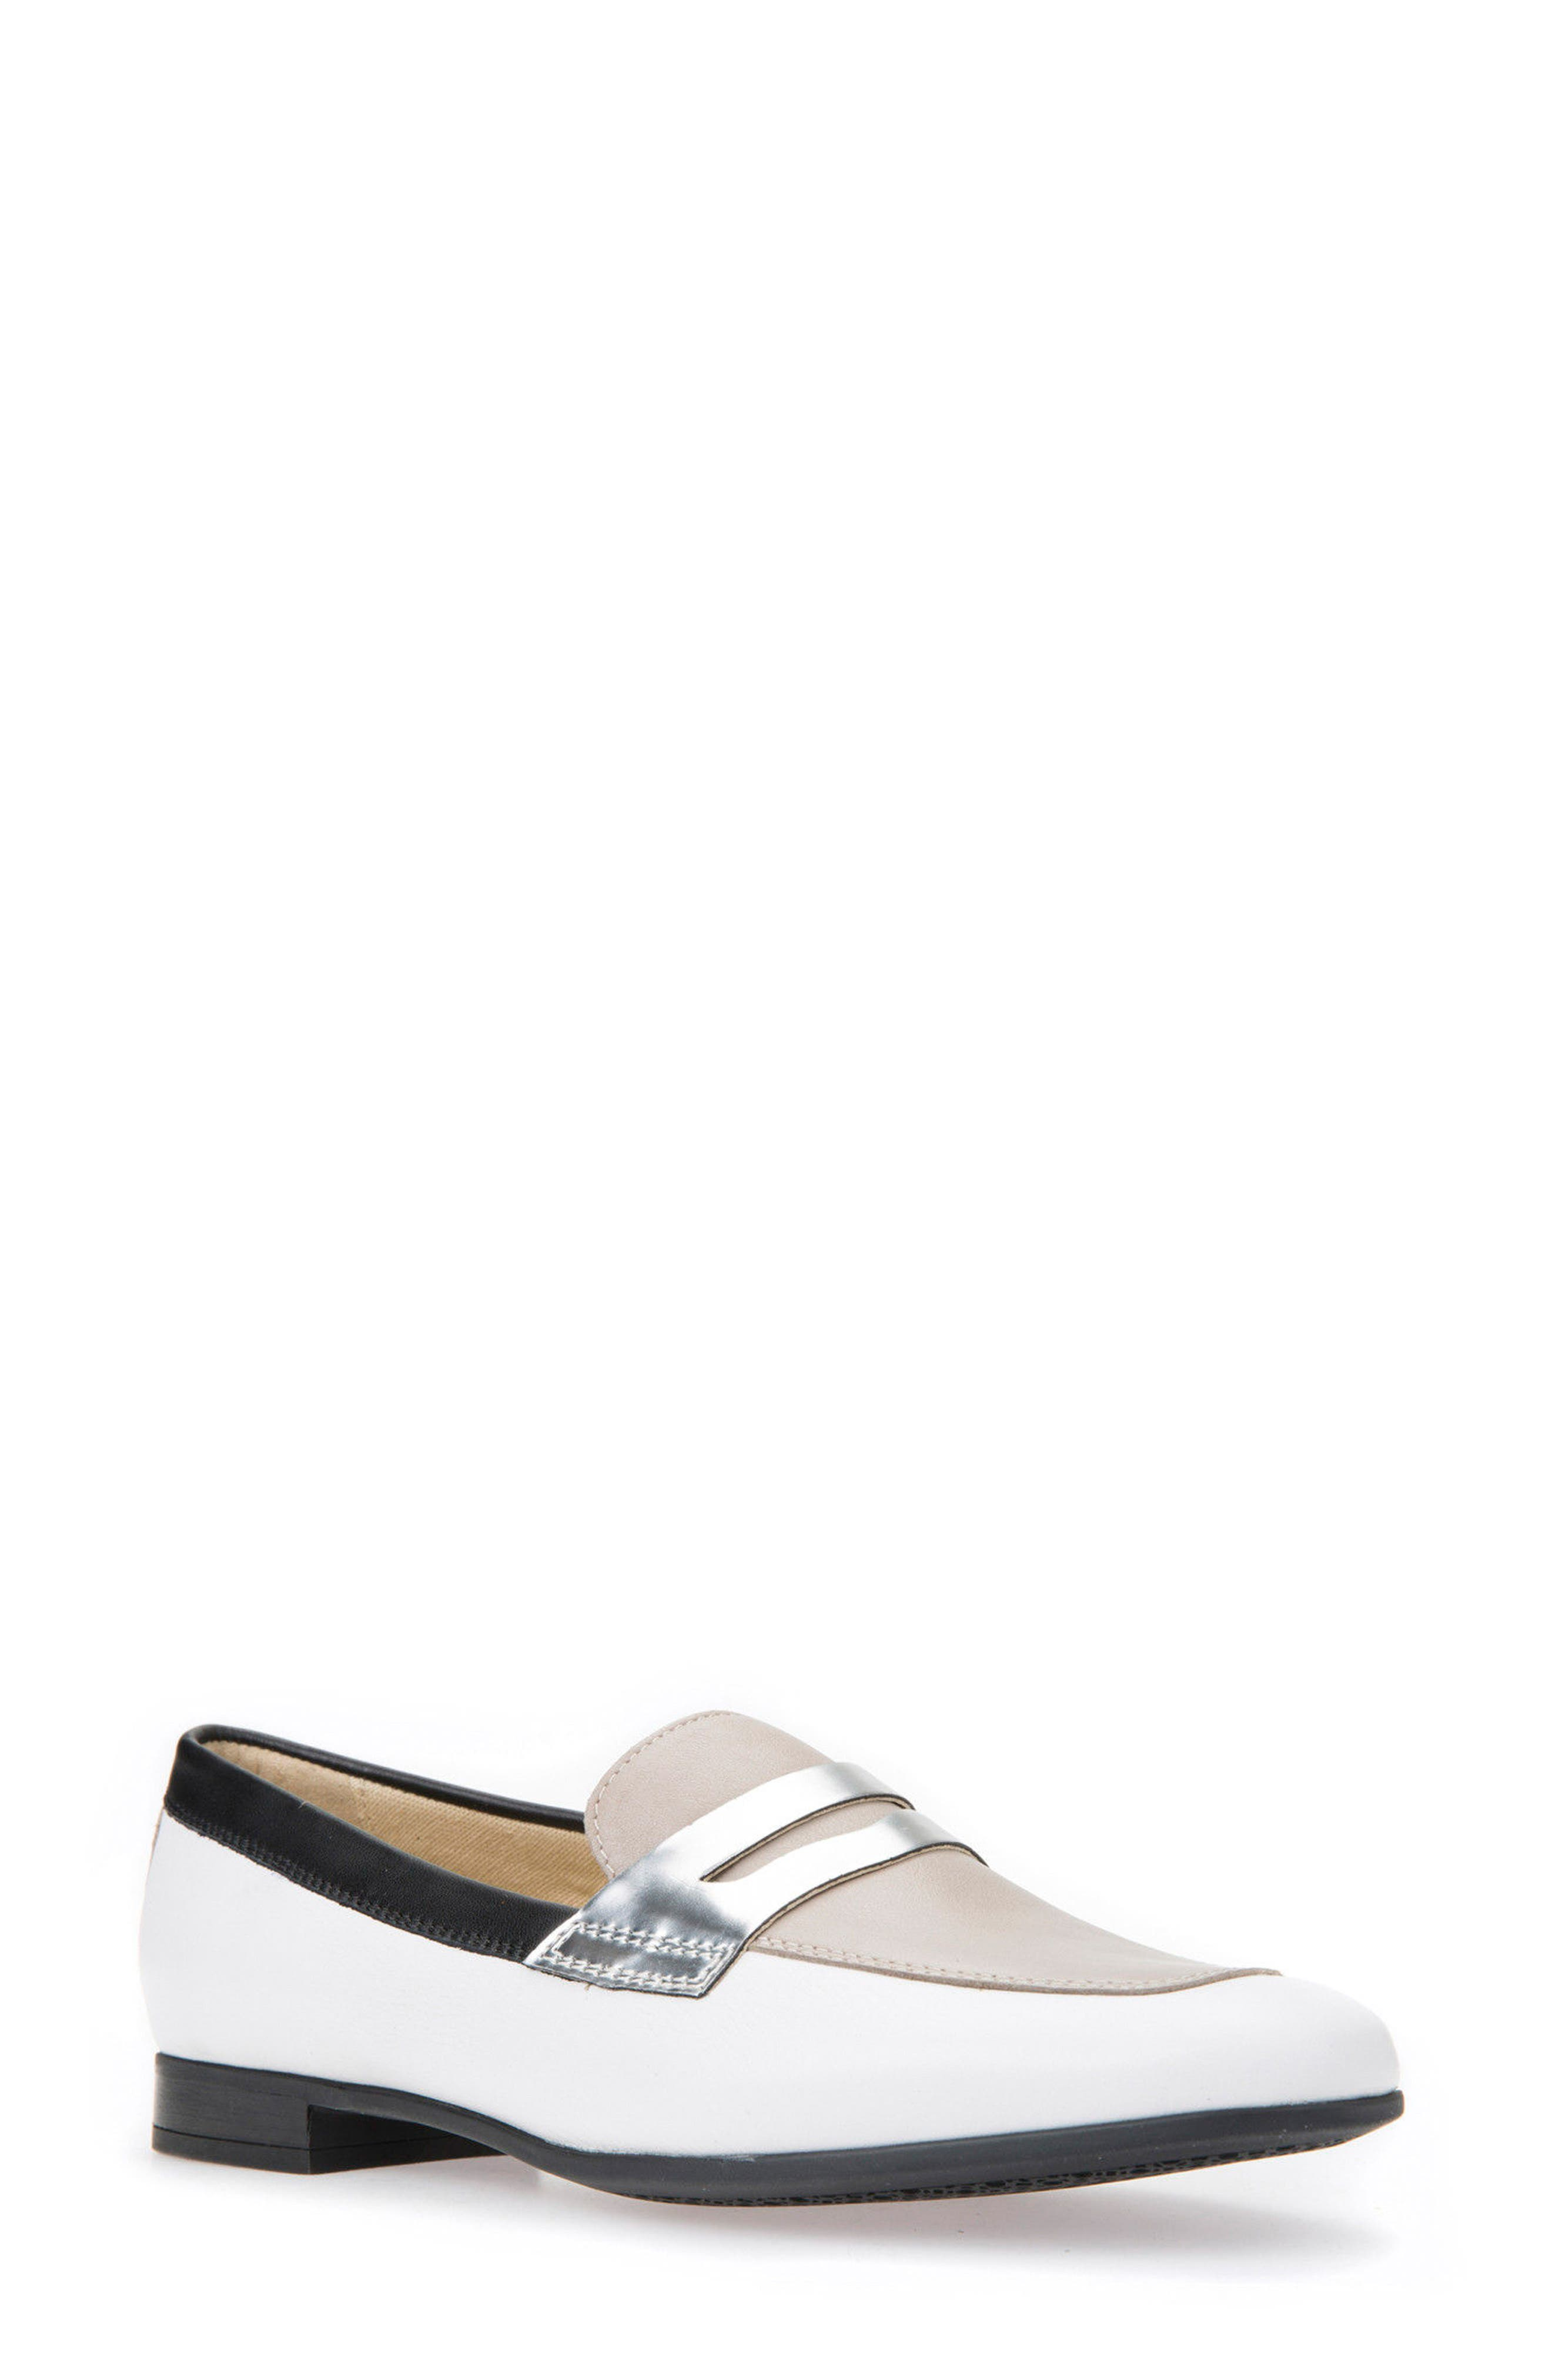 Geox  MARLYNA PENNY LOAFER